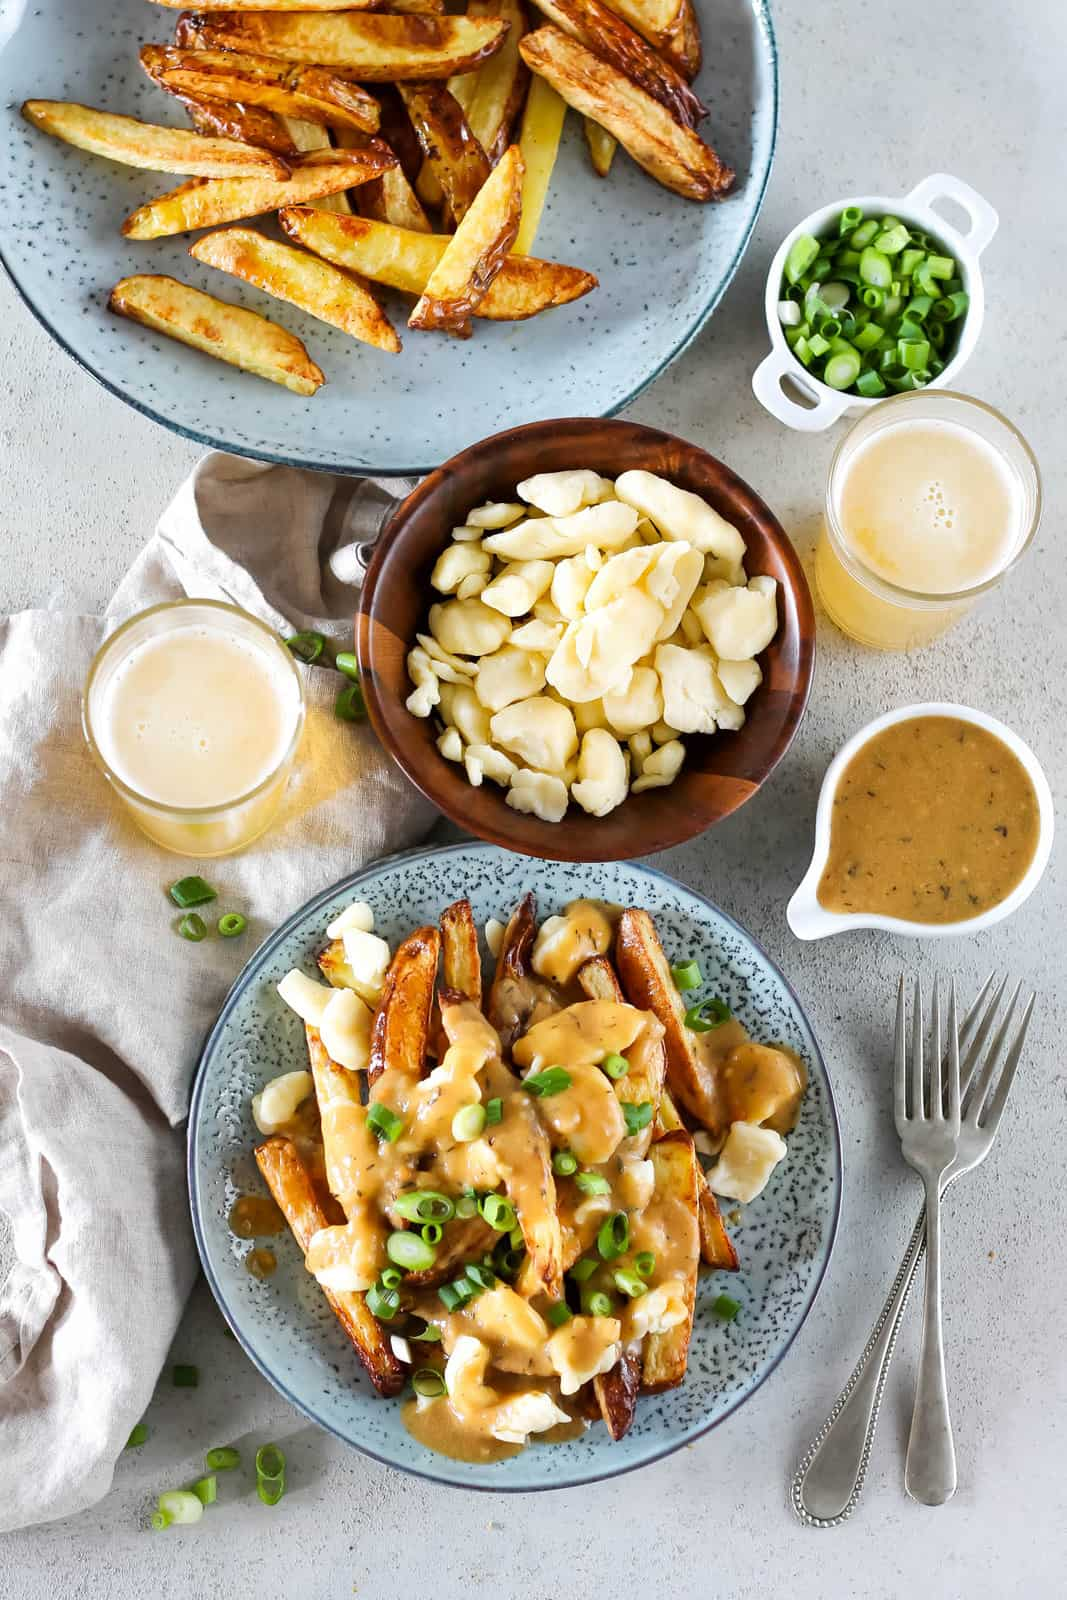 overhead photo of vegetarian poutine on a blue plate, together with all of the fixings to make poutine (fries, gravy, cheese curds)